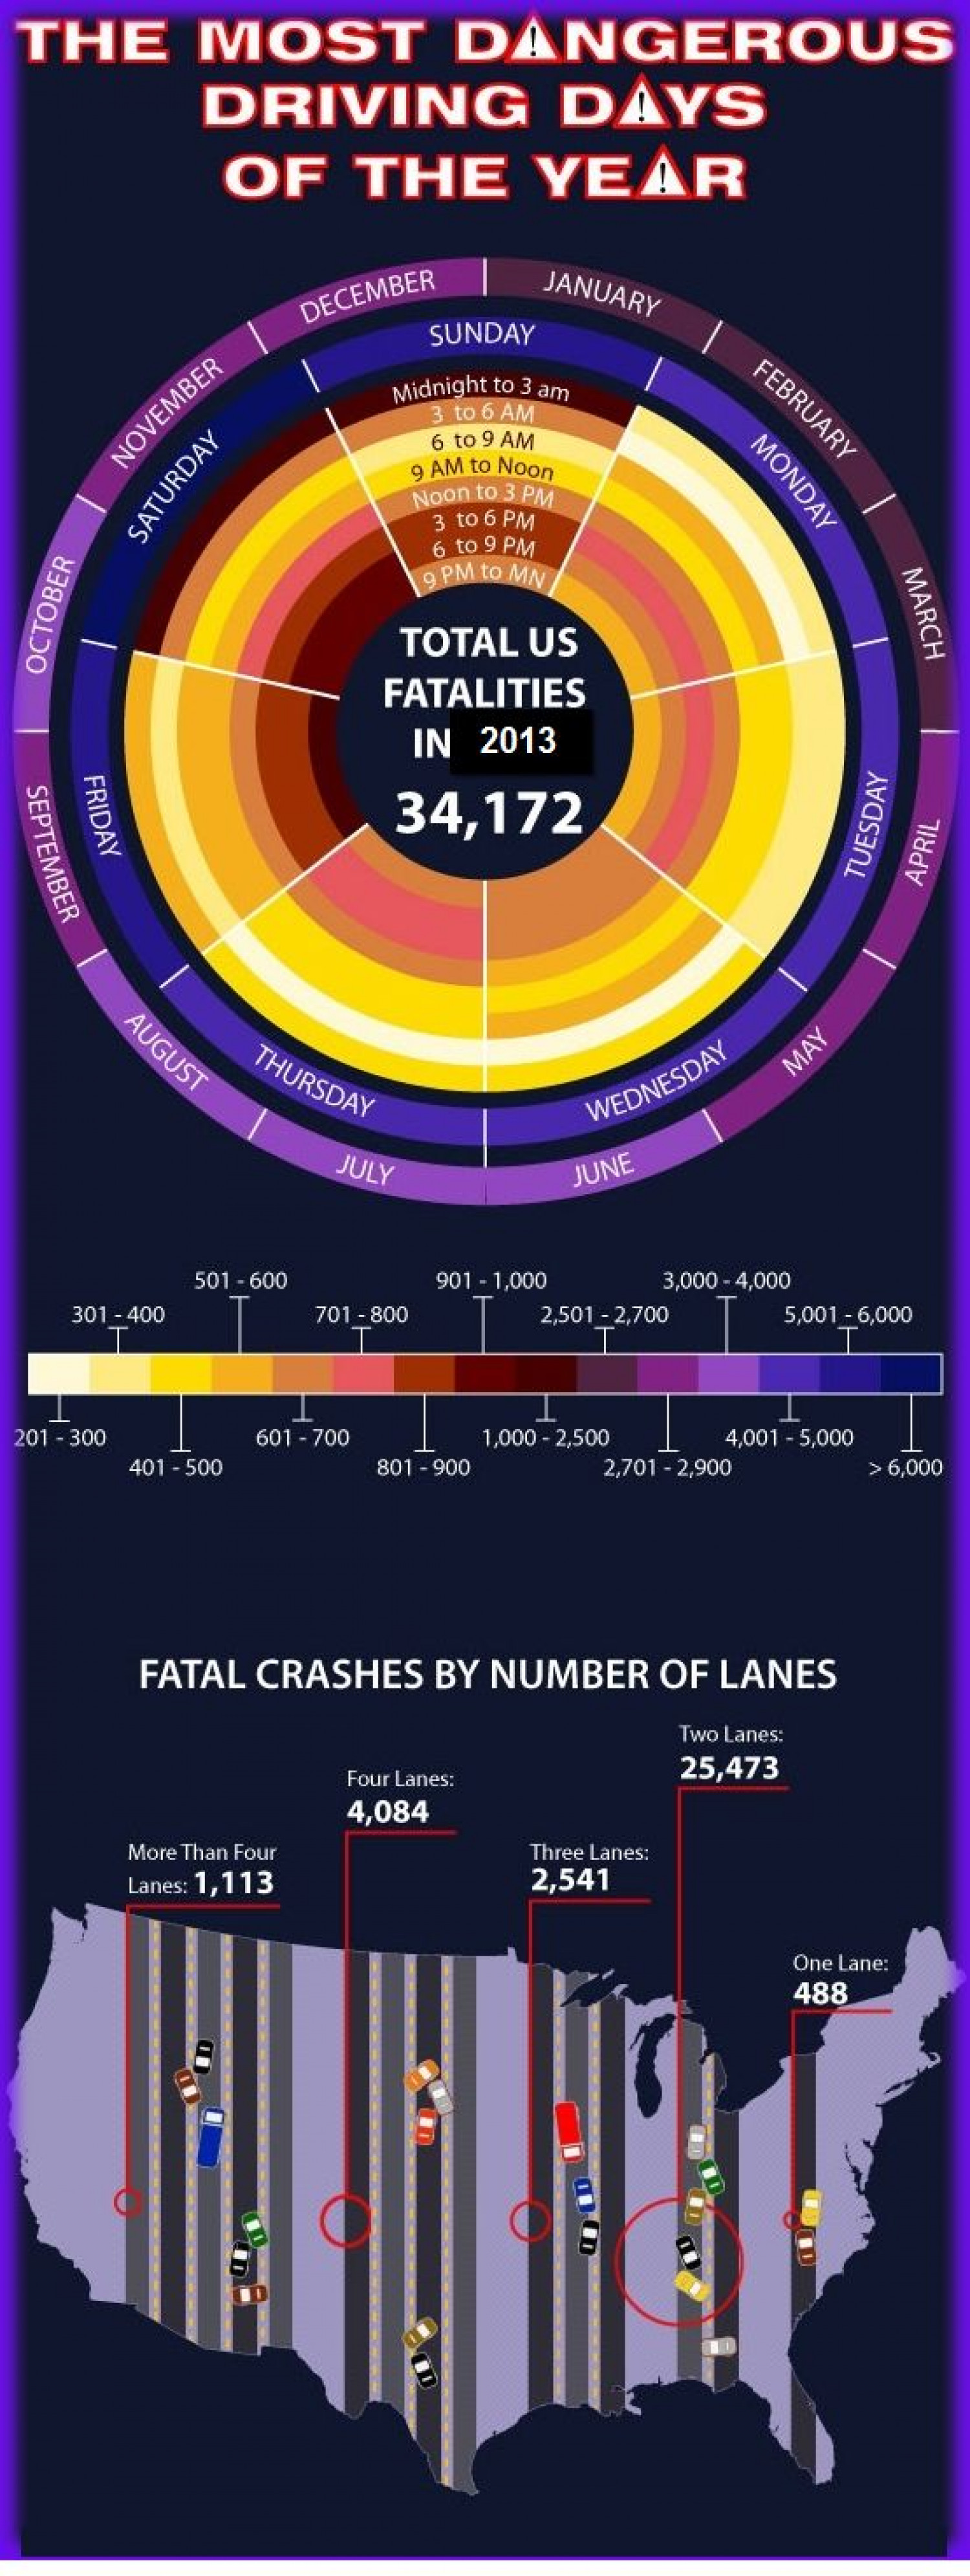 The Most Dangerous Driving Days of The Year Infographic